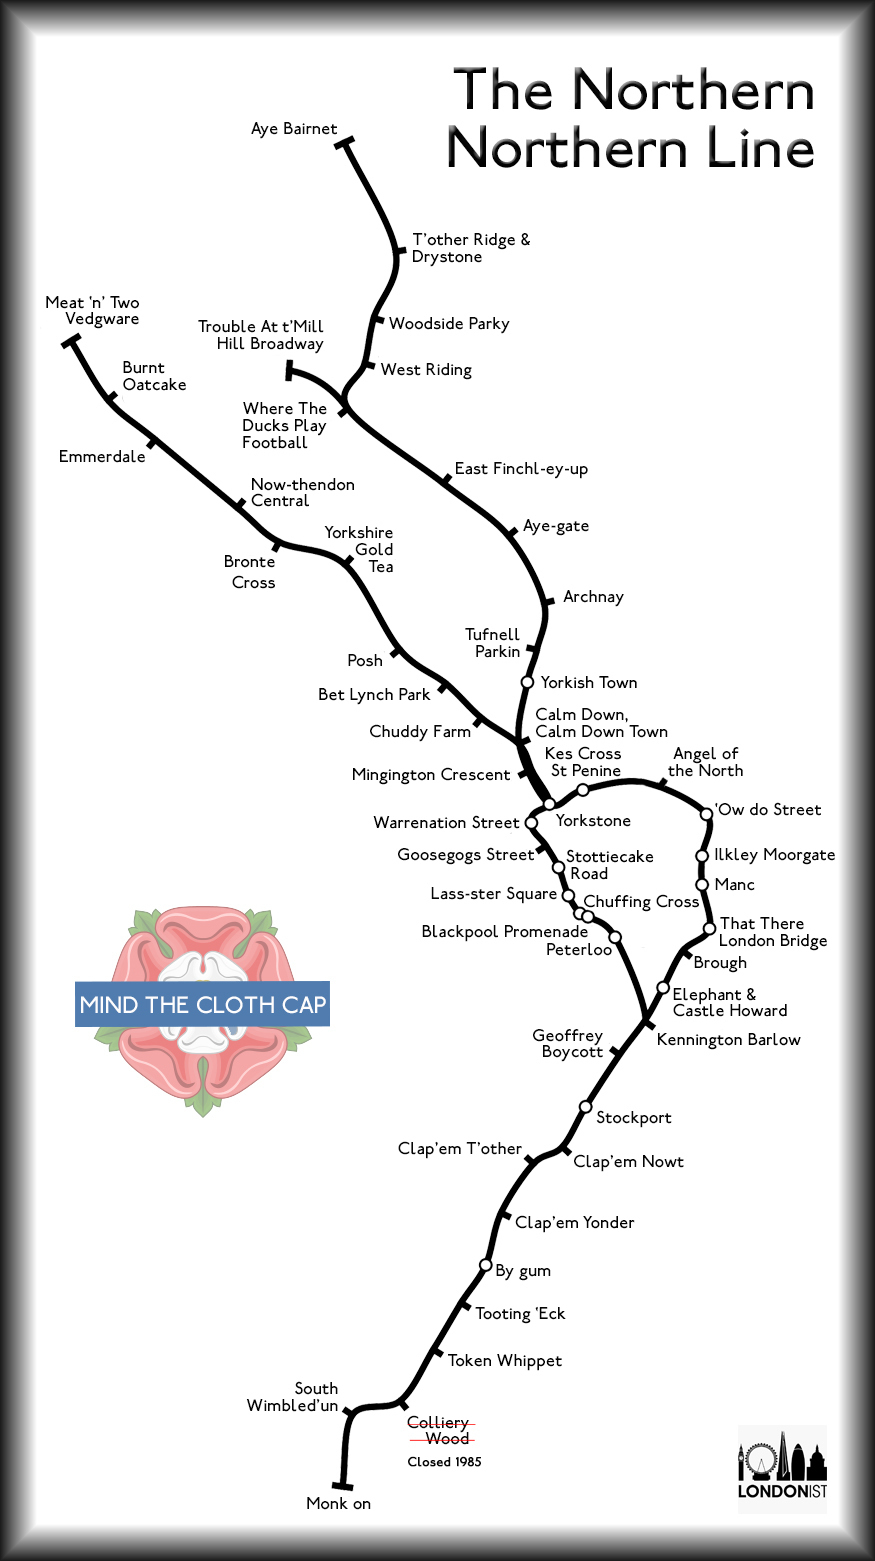 The northern northern line